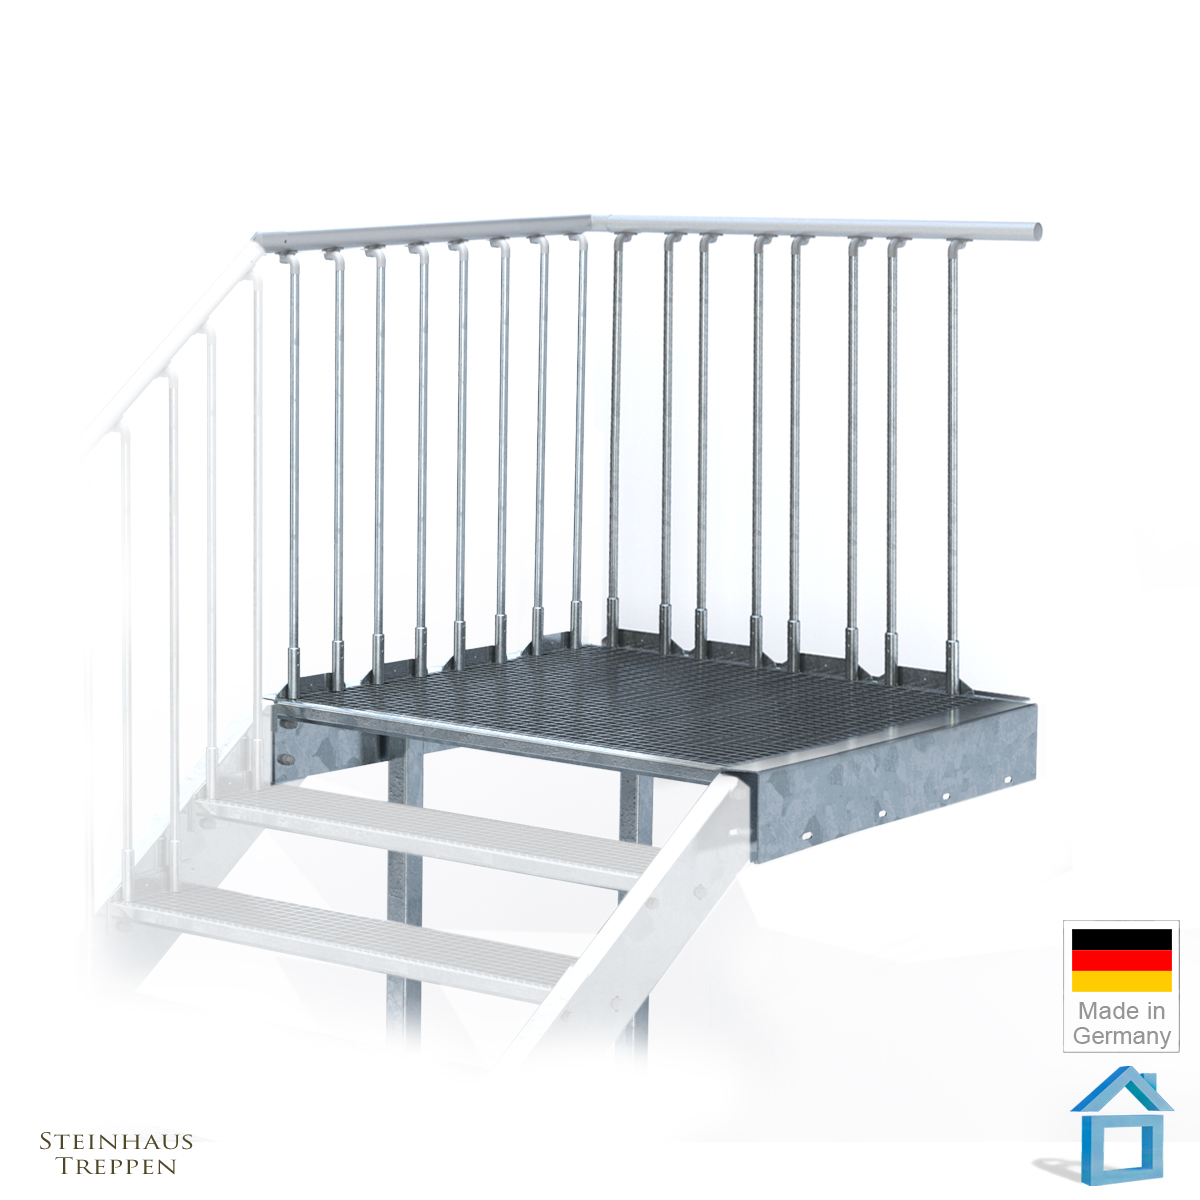 podest f r stahltreppe 80 cm feuerverzinkt mit st tzen steinhaus treppen treppen g nstig kaufen. Black Bedroom Furniture Sets. Home Design Ideas